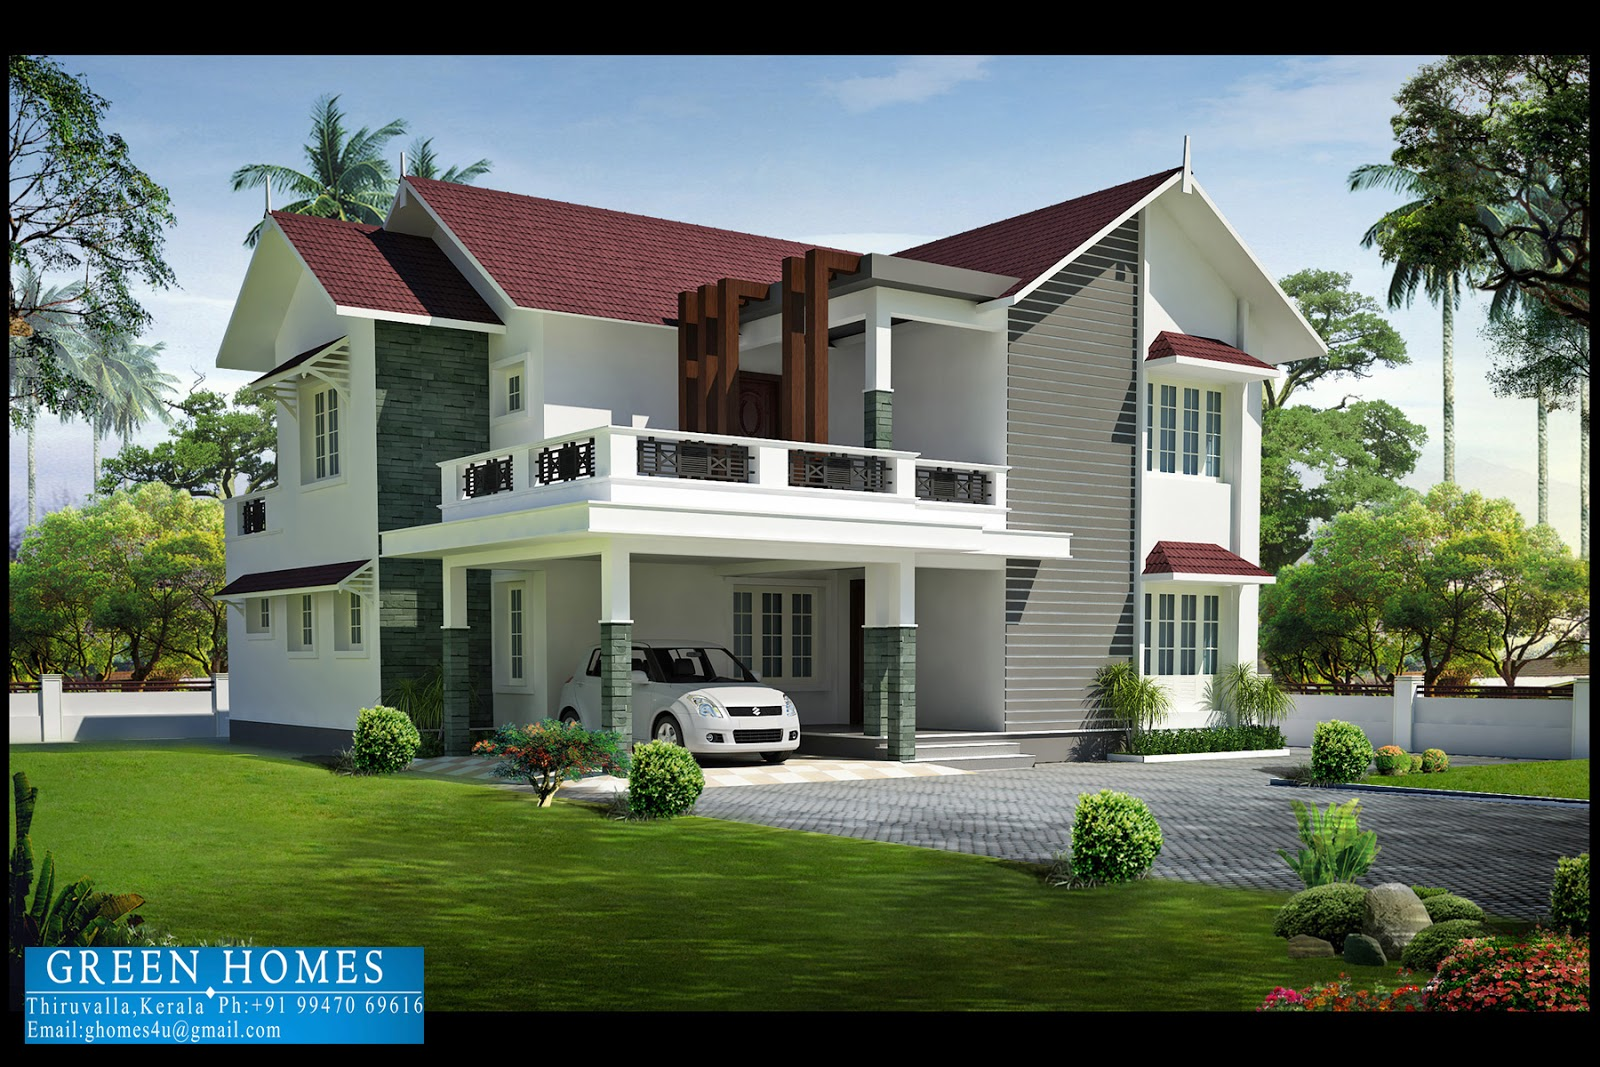 Green homes january 2013 for Kerala home design 2013